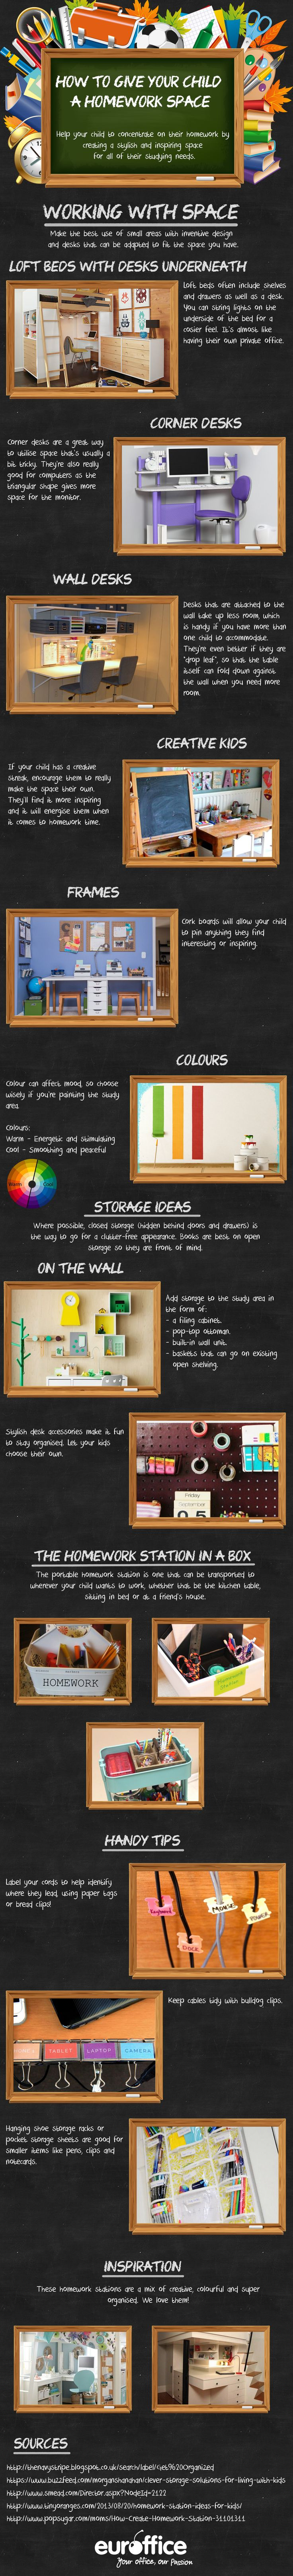 How To Give Your Child A Homework Space #Infographic #Children #Education